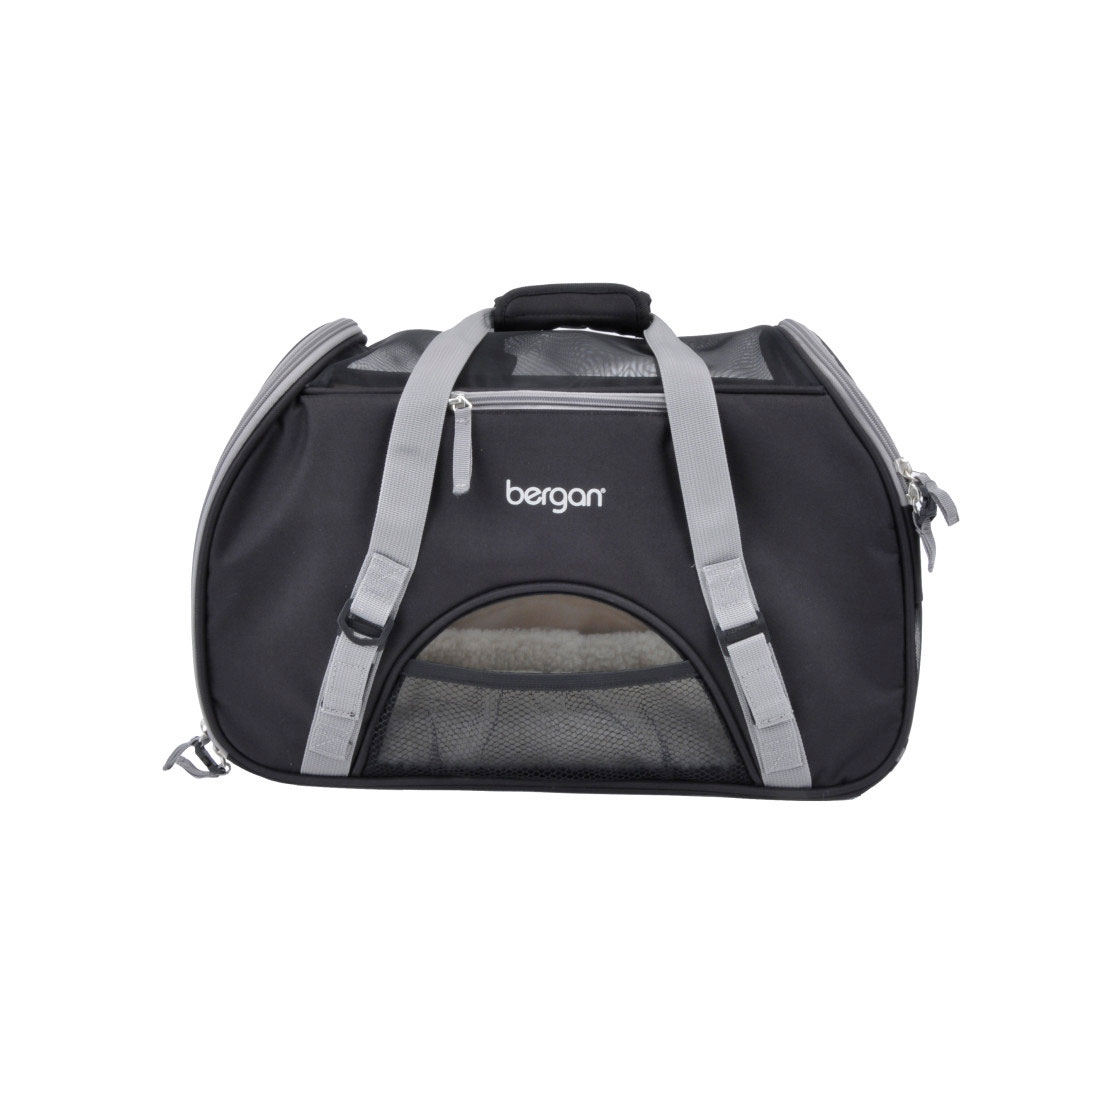 Bergan Comfort Pet Carrier, Black/Grey, Large